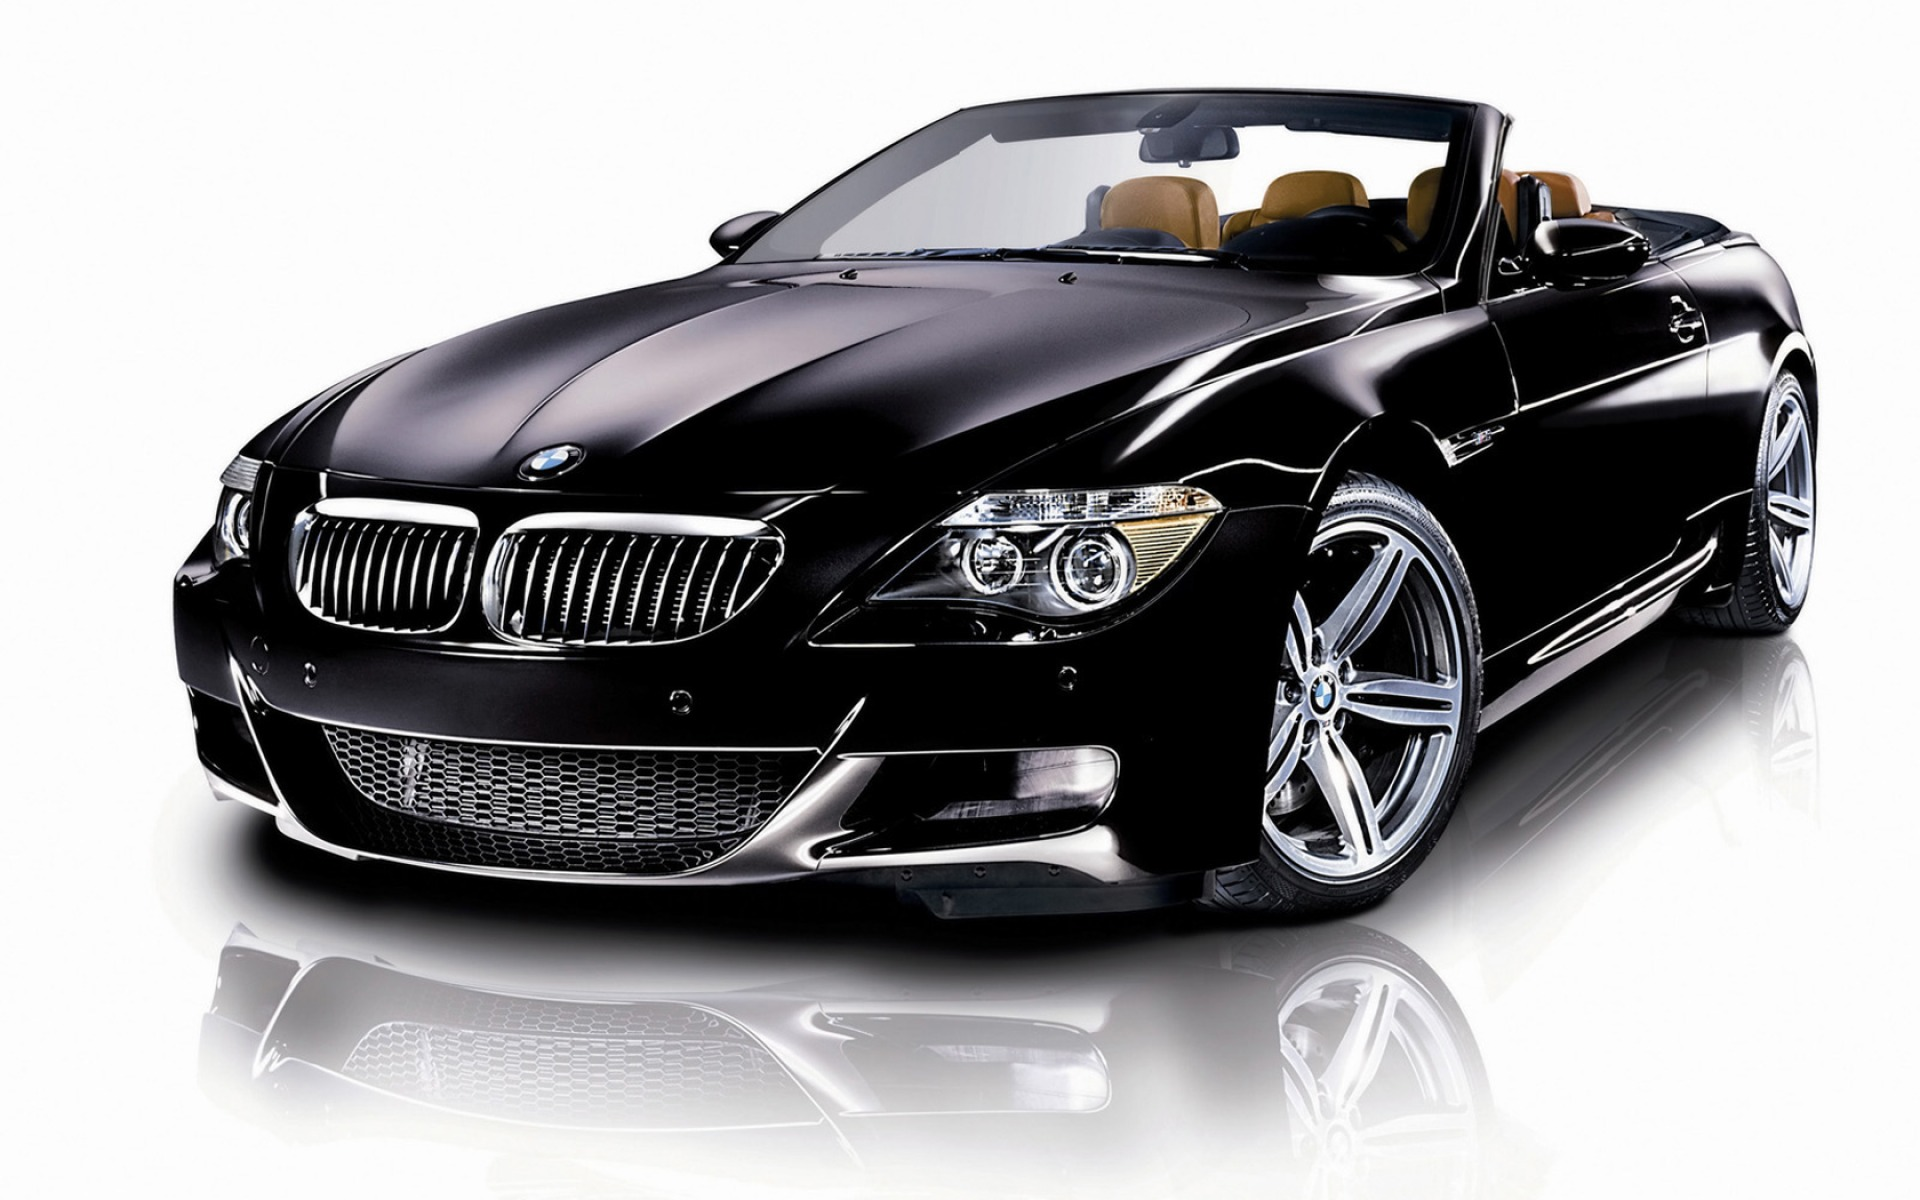 Ultrablogus  Personable Bmw Car Wallpaper Wallpapers For Free Download About   With Glamorous Bmw M Convertible Wallpaper Bmw Cars With Cute S Drift Interior Also  Chevy C Interior In Addition  Dodge Durango Interior And Car Interior Pics As Well As  Mustang Interior Additionally Is Interior From Allfreedownloadcom With Ultrablogus  Glamorous Bmw Car Wallpaper Wallpapers For Free Download About   With Cute Bmw M Convertible Wallpaper Bmw Cars And Personable S Drift Interior Also  Chevy C Interior In Addition  Dodge Durango Interior From Allfreedownloadcom